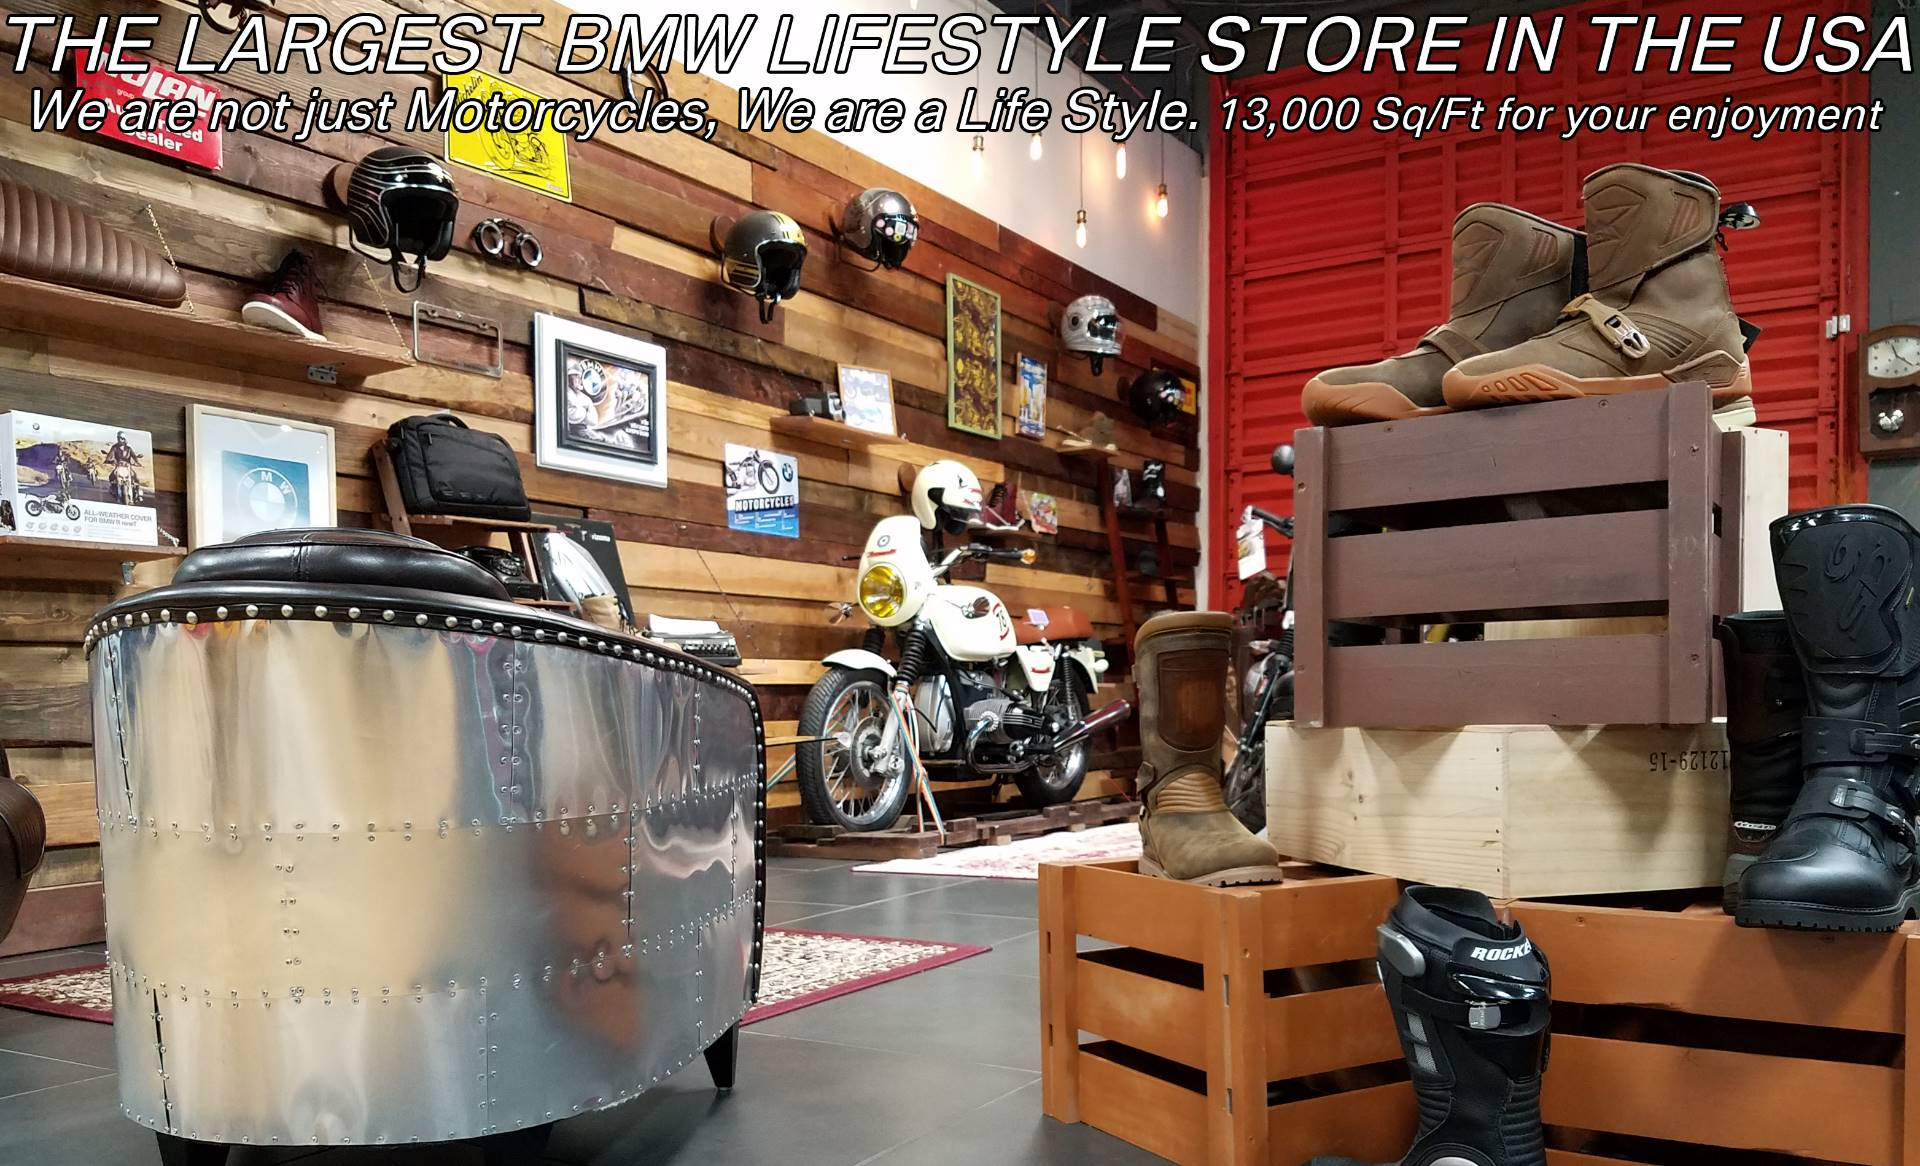 Used 2014 BMW R 1200 GS For Sale, Pre Owned BMW R 1200GS For Sale, Pre-Owned BMW Motorcycle R1200GS, BMW Motorcycle, 1200GS, GS, BMWUsed 2014 BMW R 1200 GS For Sale, Pre Owned BMW R 1200GS For Sale, Pre-Owned BMW Motorcycle R1200GS, BMW Motorcycle, 1200GS, GS, BMW